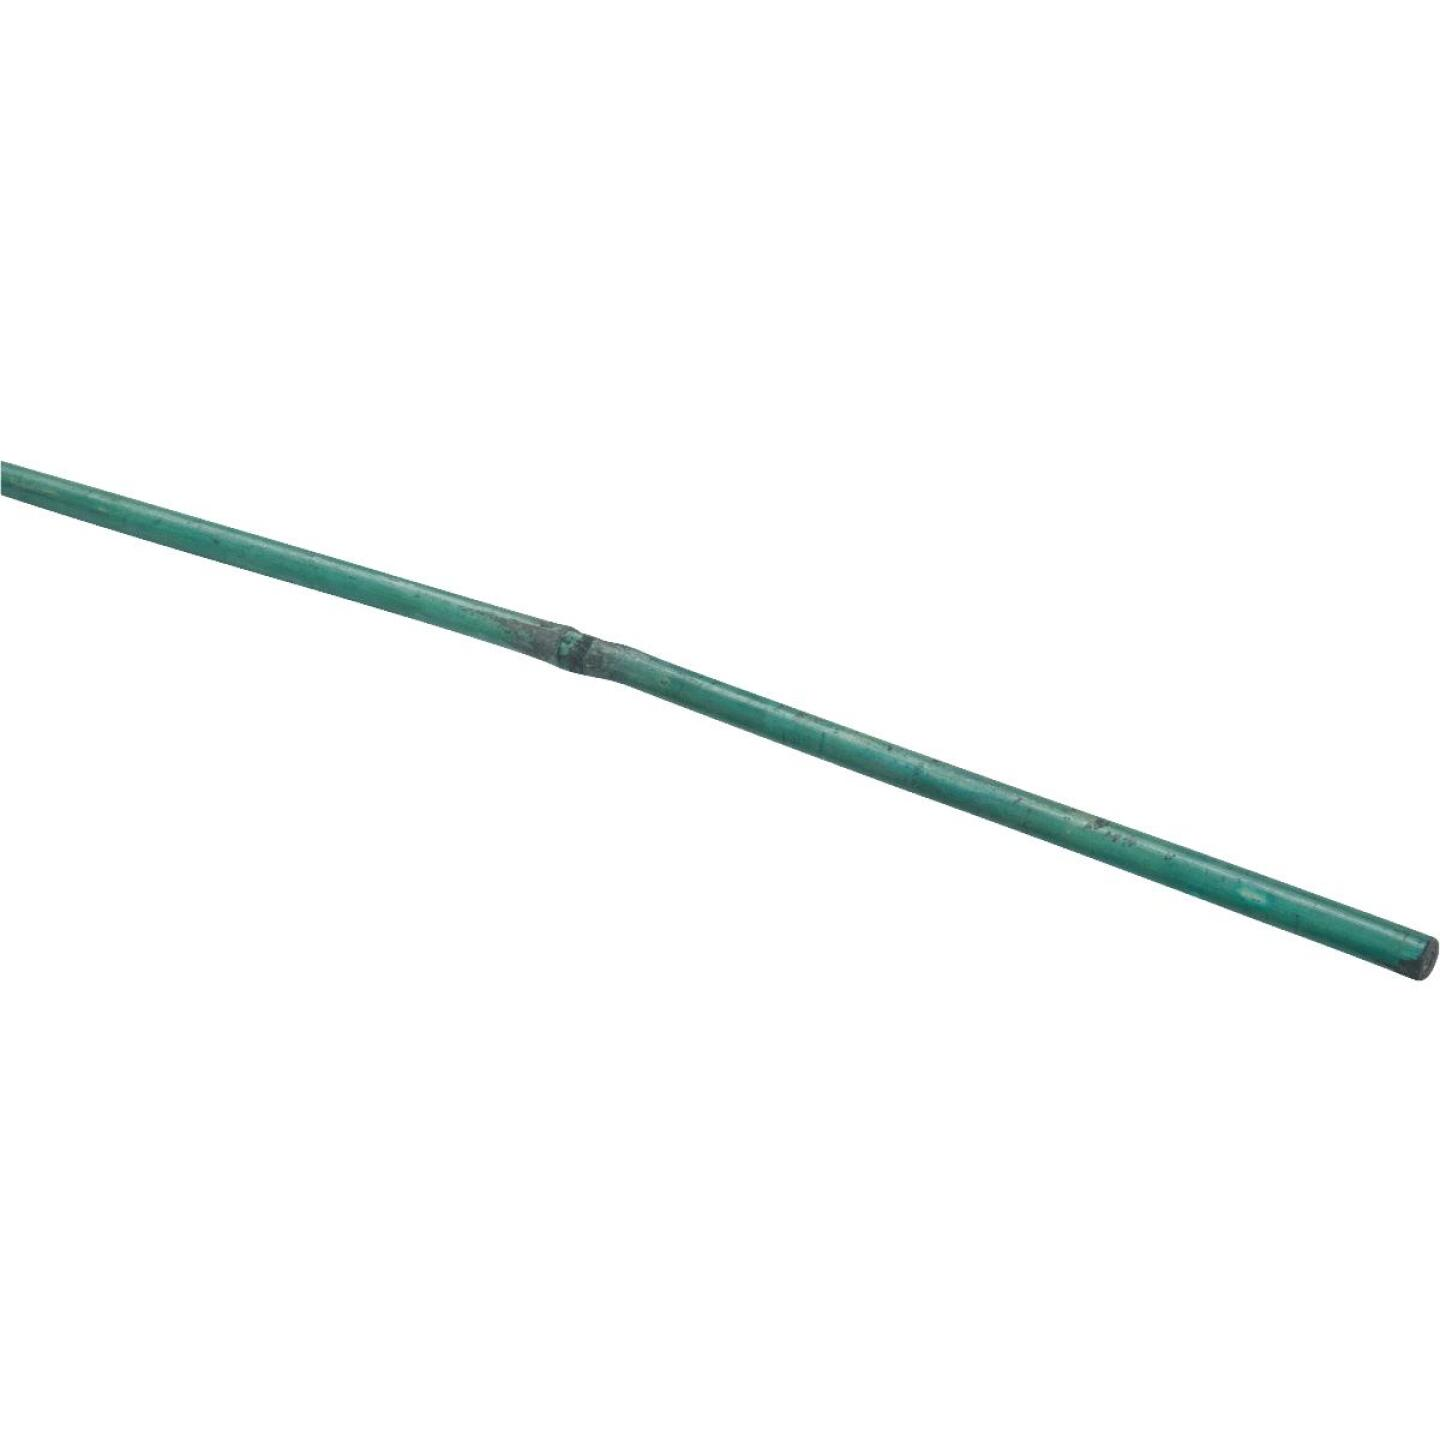 Bond 3 Ft. Green Bamboo Plant Stakes (25-Pack) Image 2